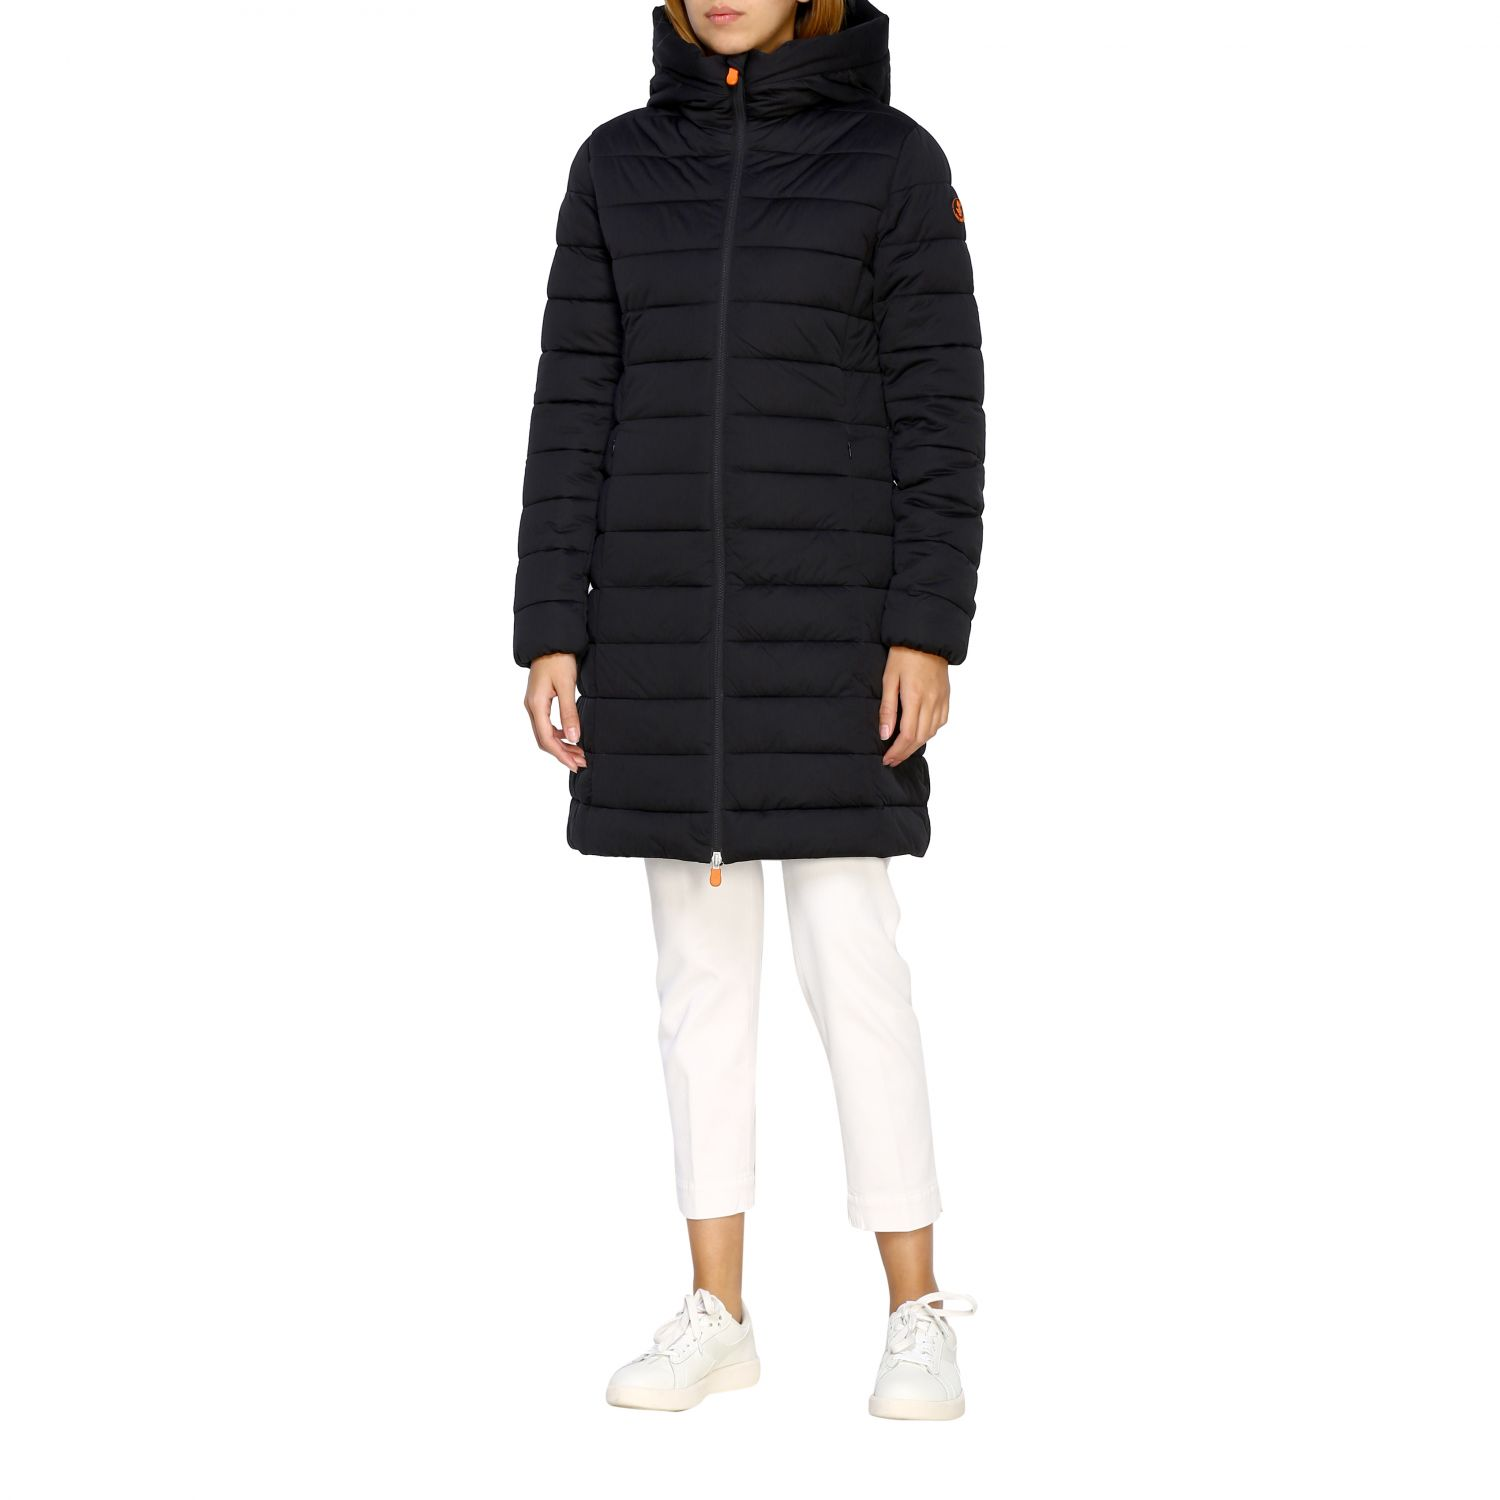 Chaqueta Save The Duck: Chaqueta mujer Save The Duck negro 3